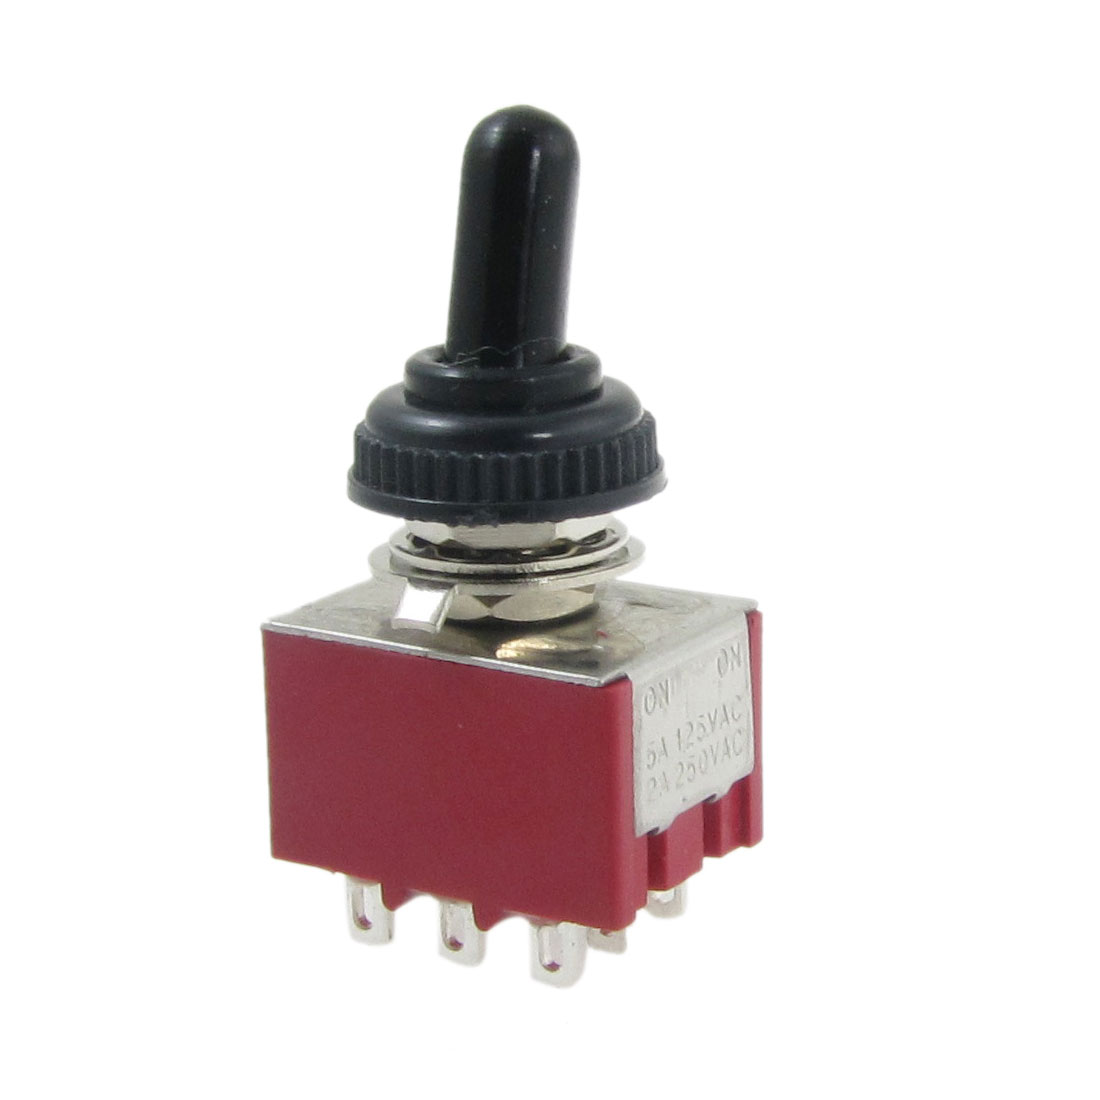 AC 250V 2A 125V 5A ON/ON 2 Way 3PDT 9 Pins Toggle Switch with Waterproof Boot